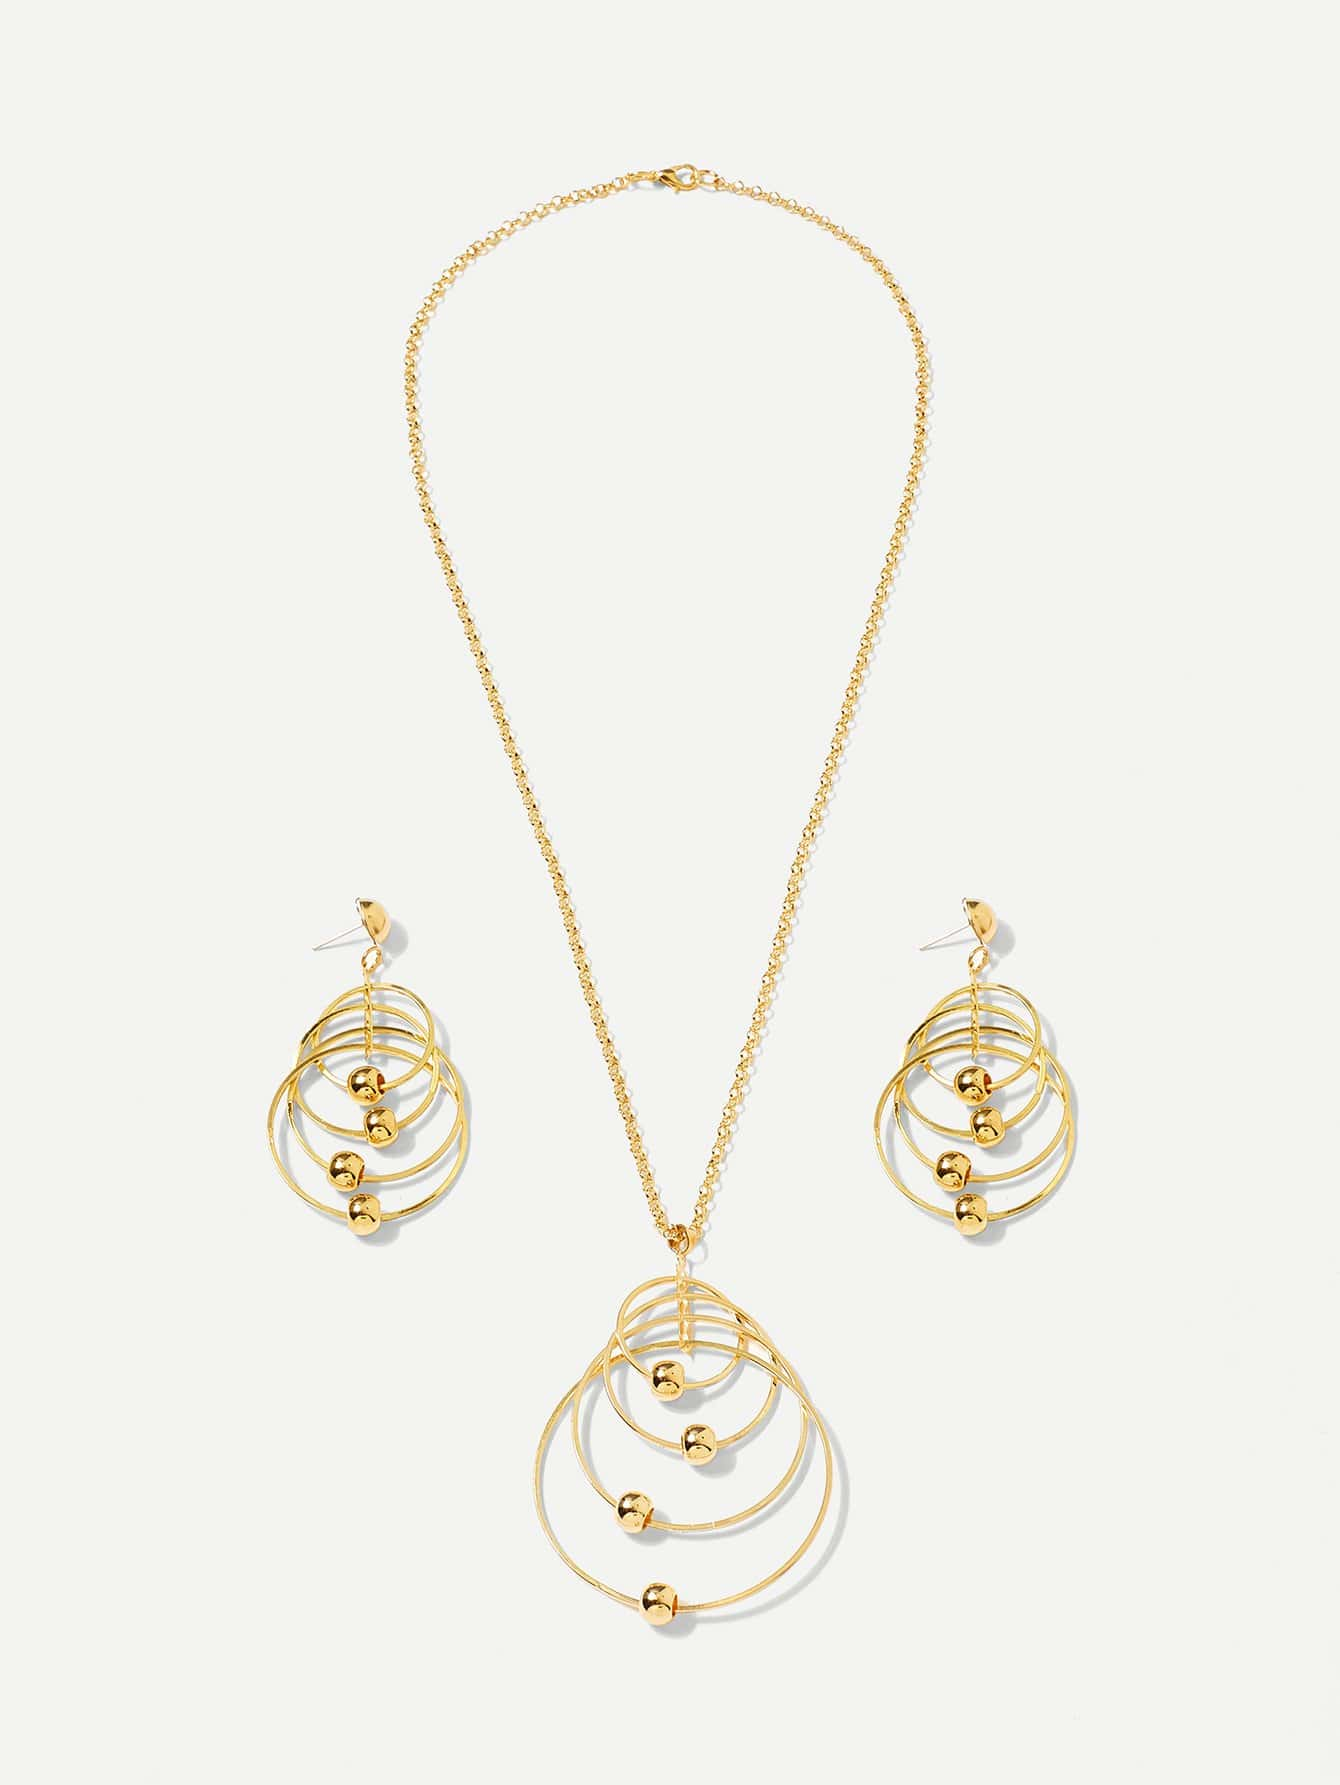 Layered Ring Pendant Chain Necklace & Drop Earrings Set round drop chain necklace